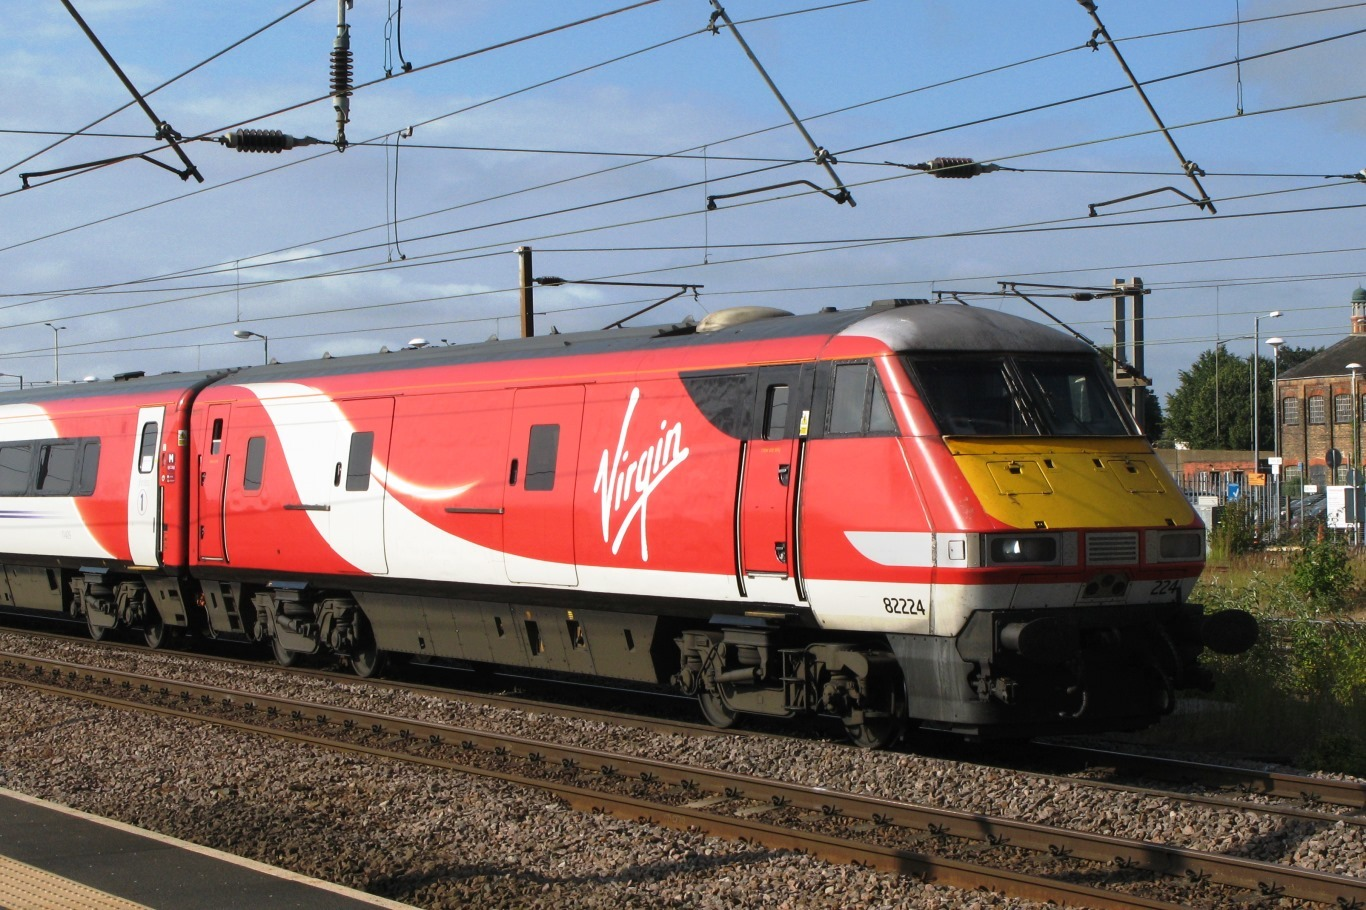 Around 10 LNER trains have been taken out of service due to damage to their pantographs